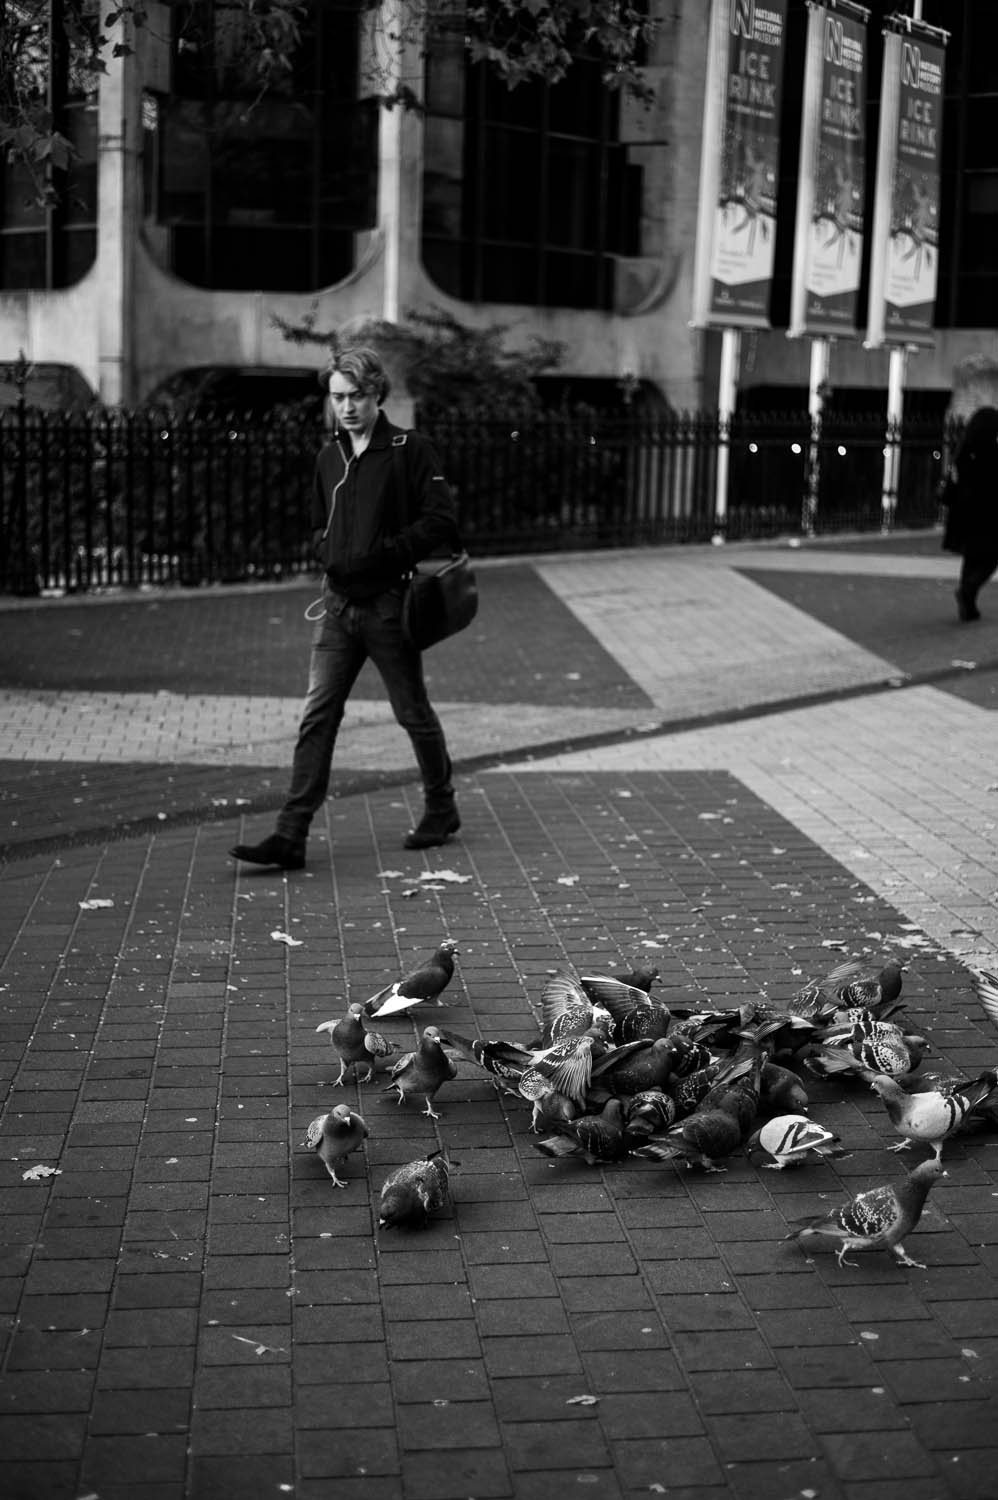 A man walks by a group of pigeons in London